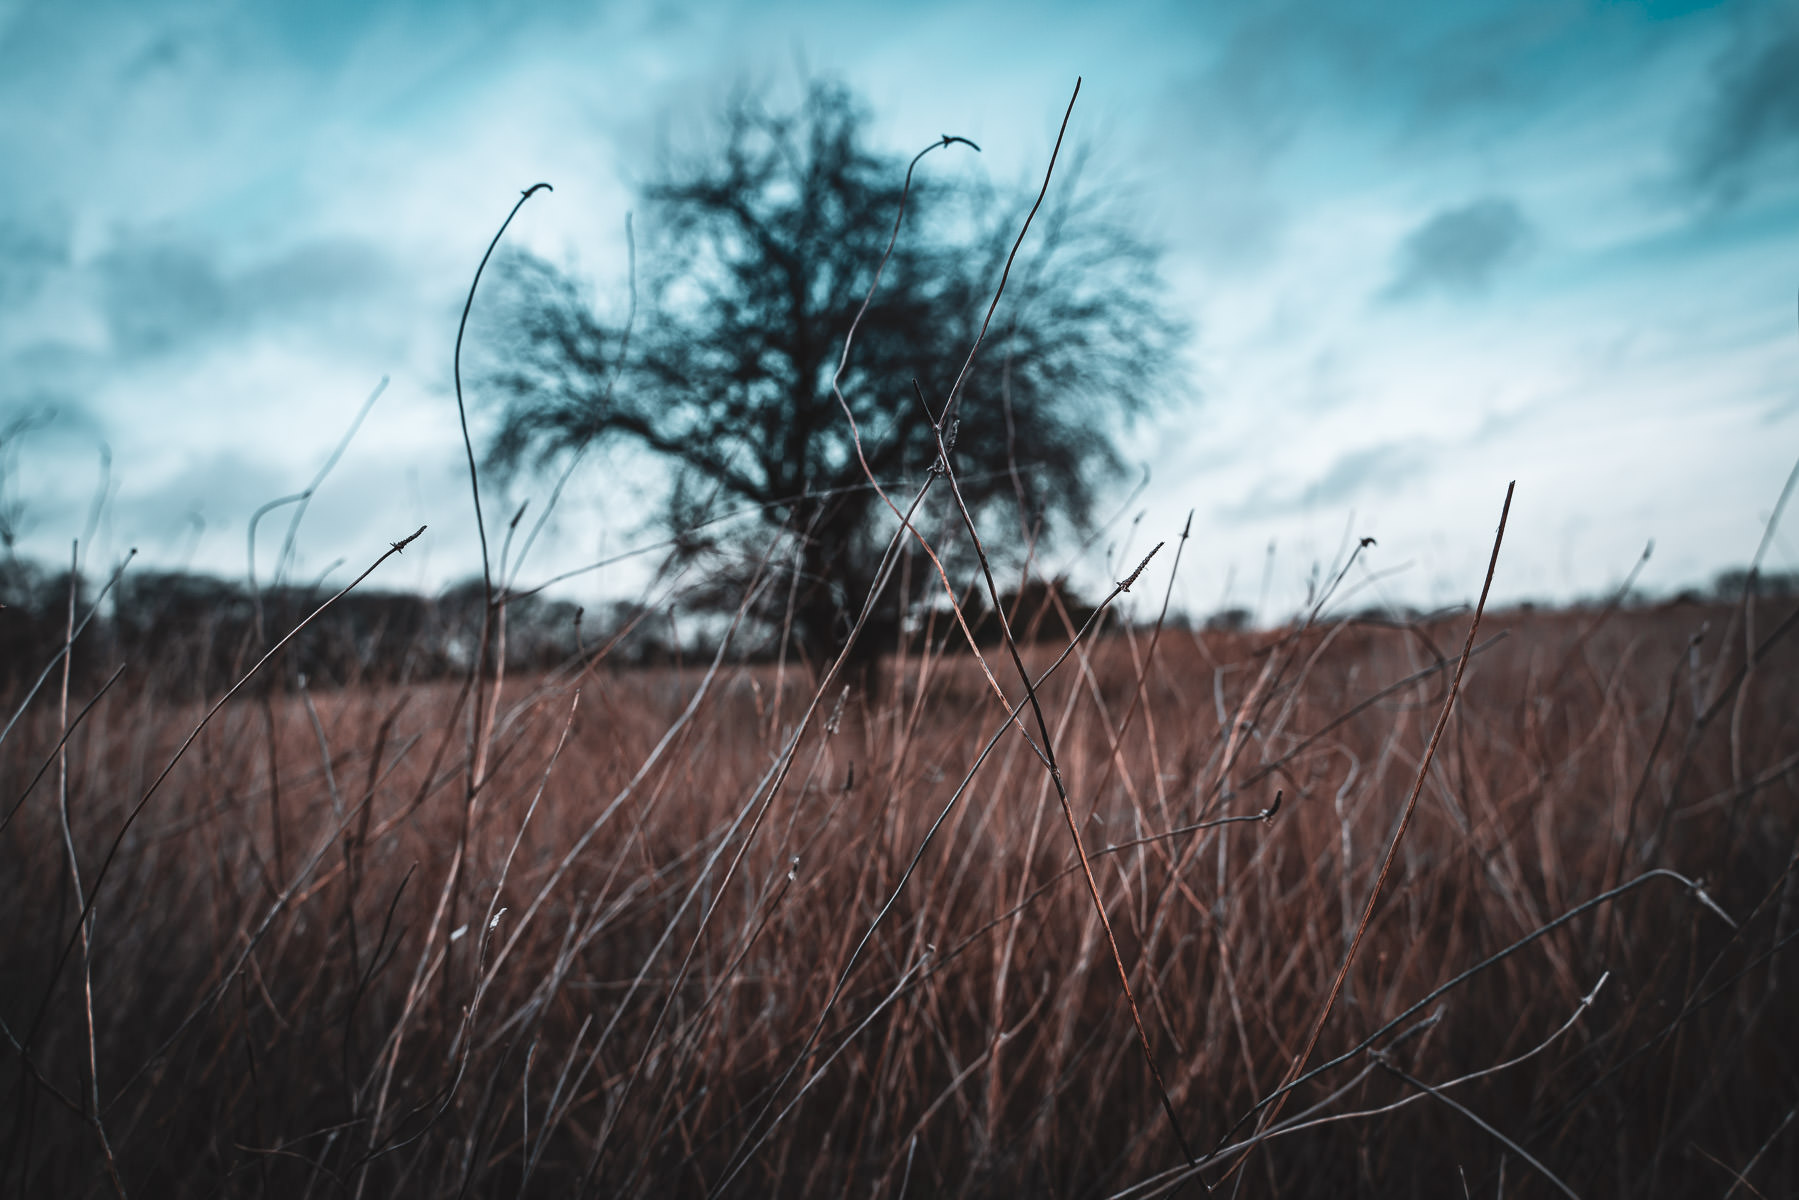 Tall grass withers in the cold at McKinney, Texas' Erwin Park.